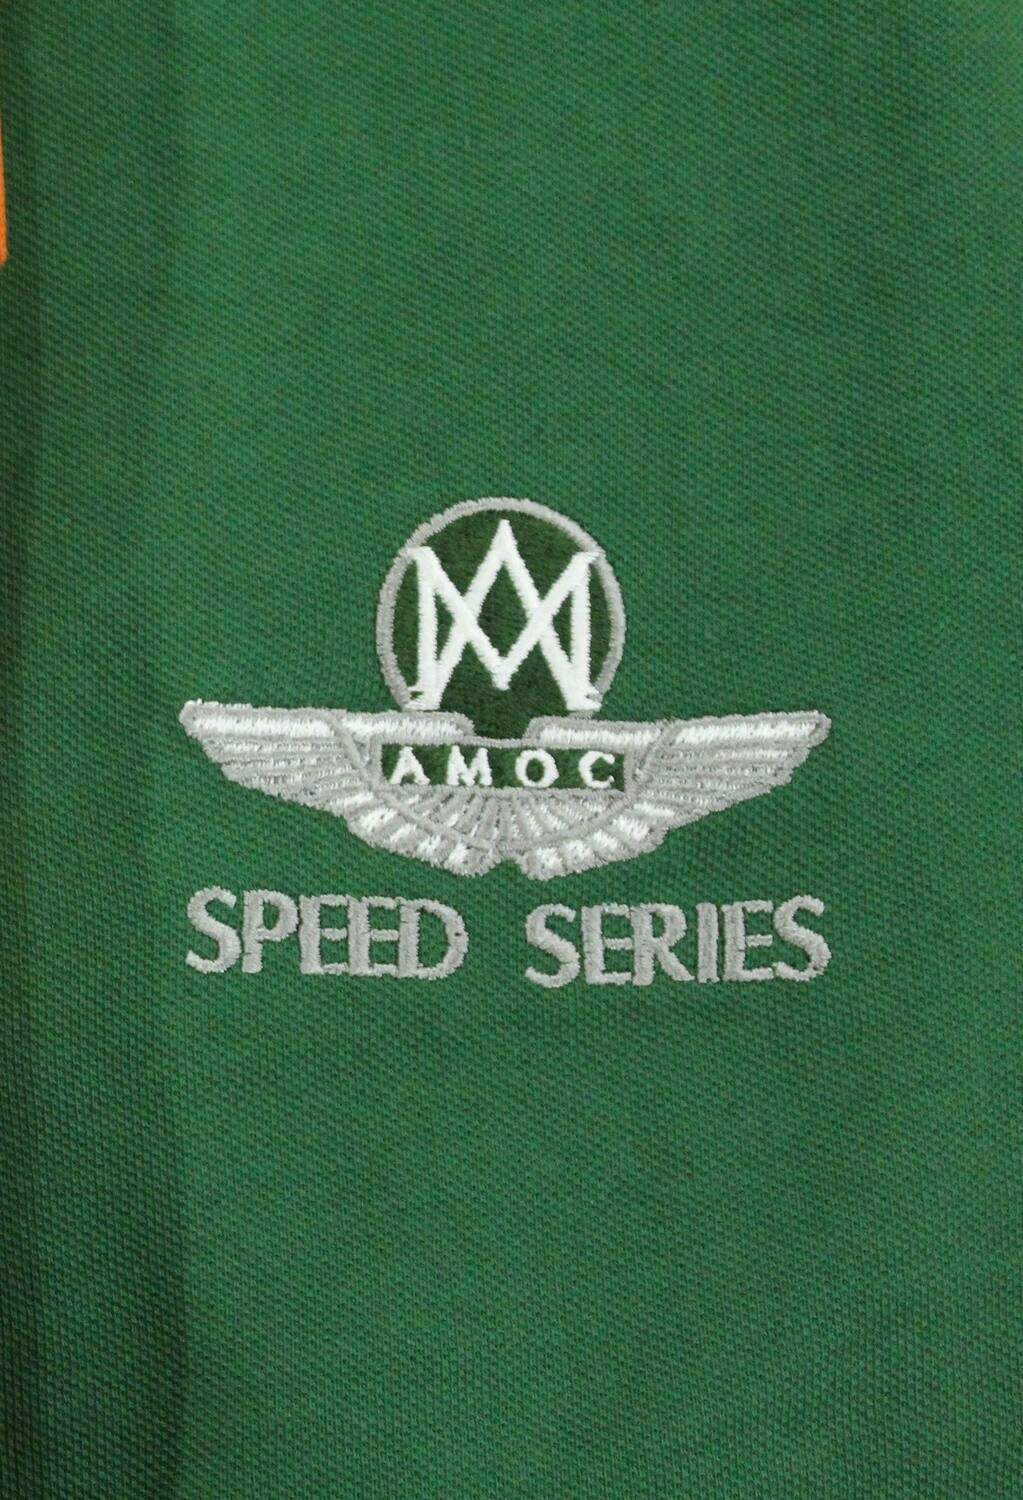 """Polo """"Speed Series"""" - for men"""